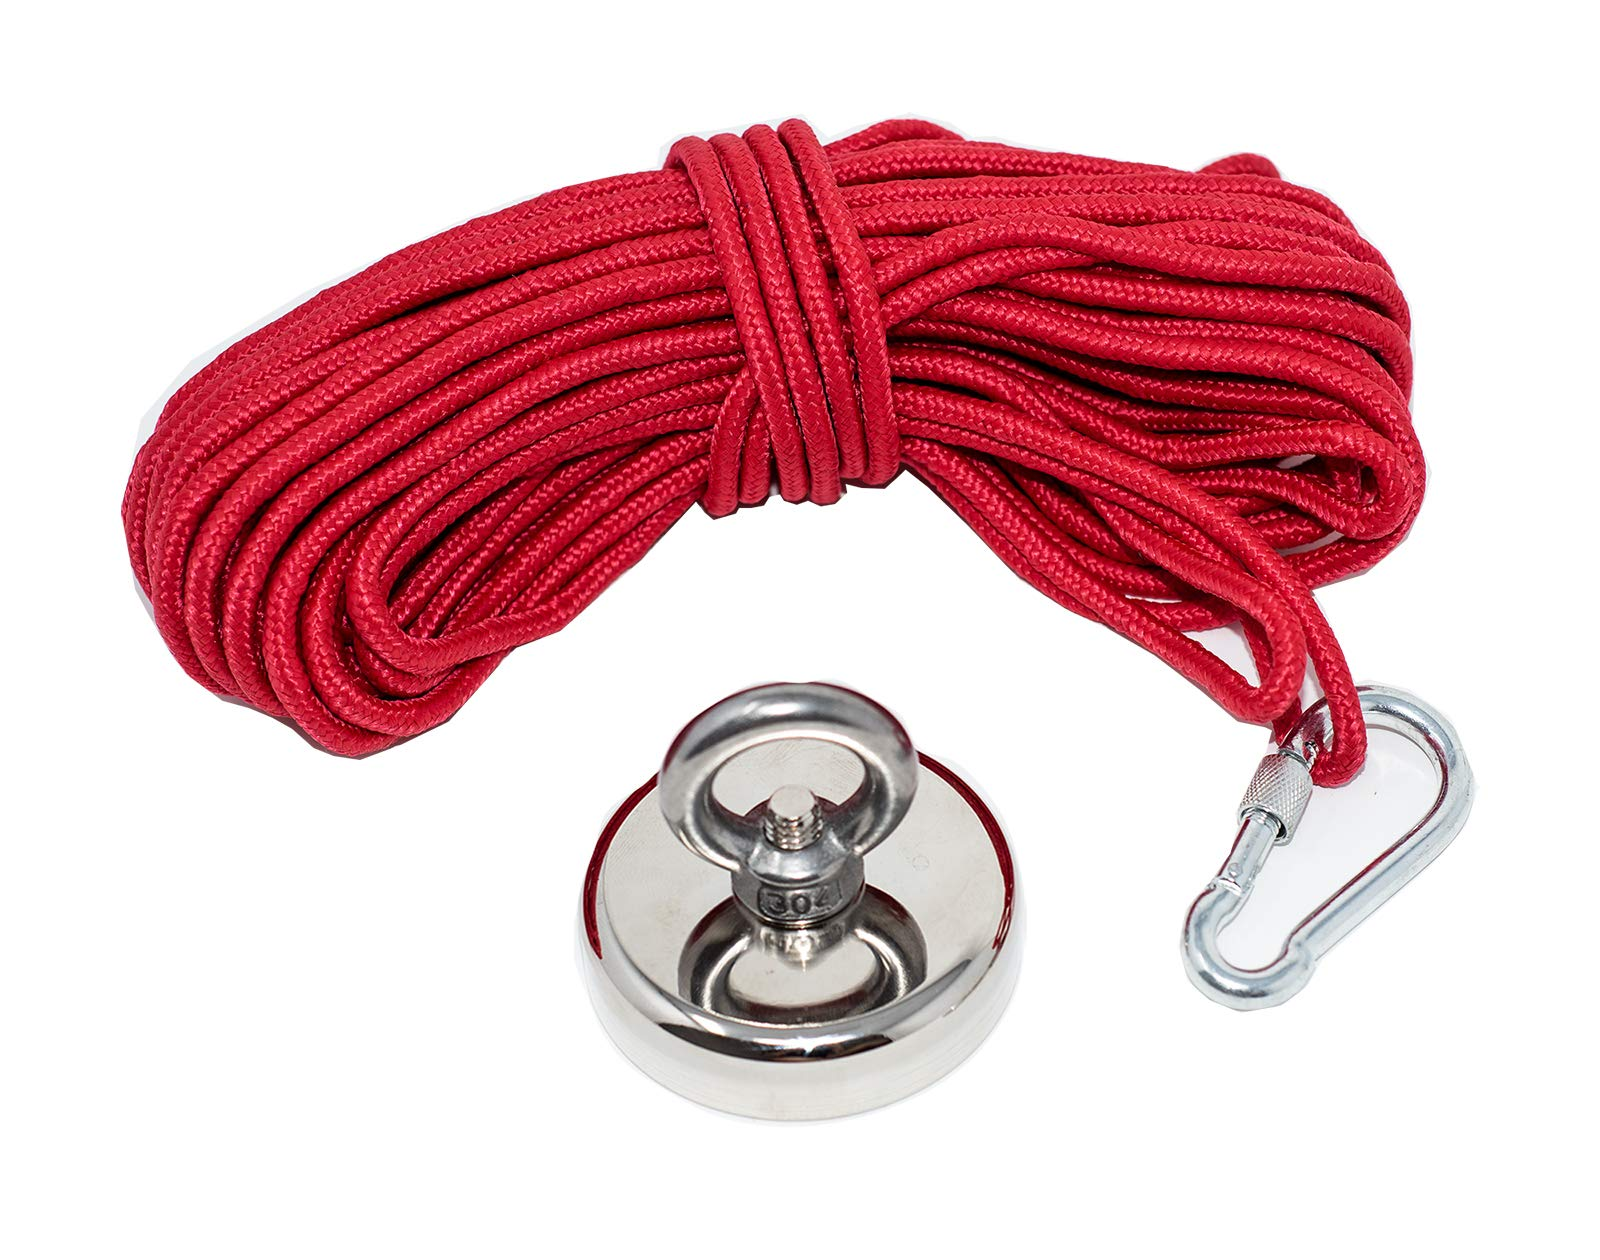 Fishing Magnets 350lbs Pull Force,Strong Retrieval Magnet N52 Neodymium Magnets with 20m(64 Foot) Durable Rope,Powerful Magnets for Fishing and Magnetic Recovery Salvage